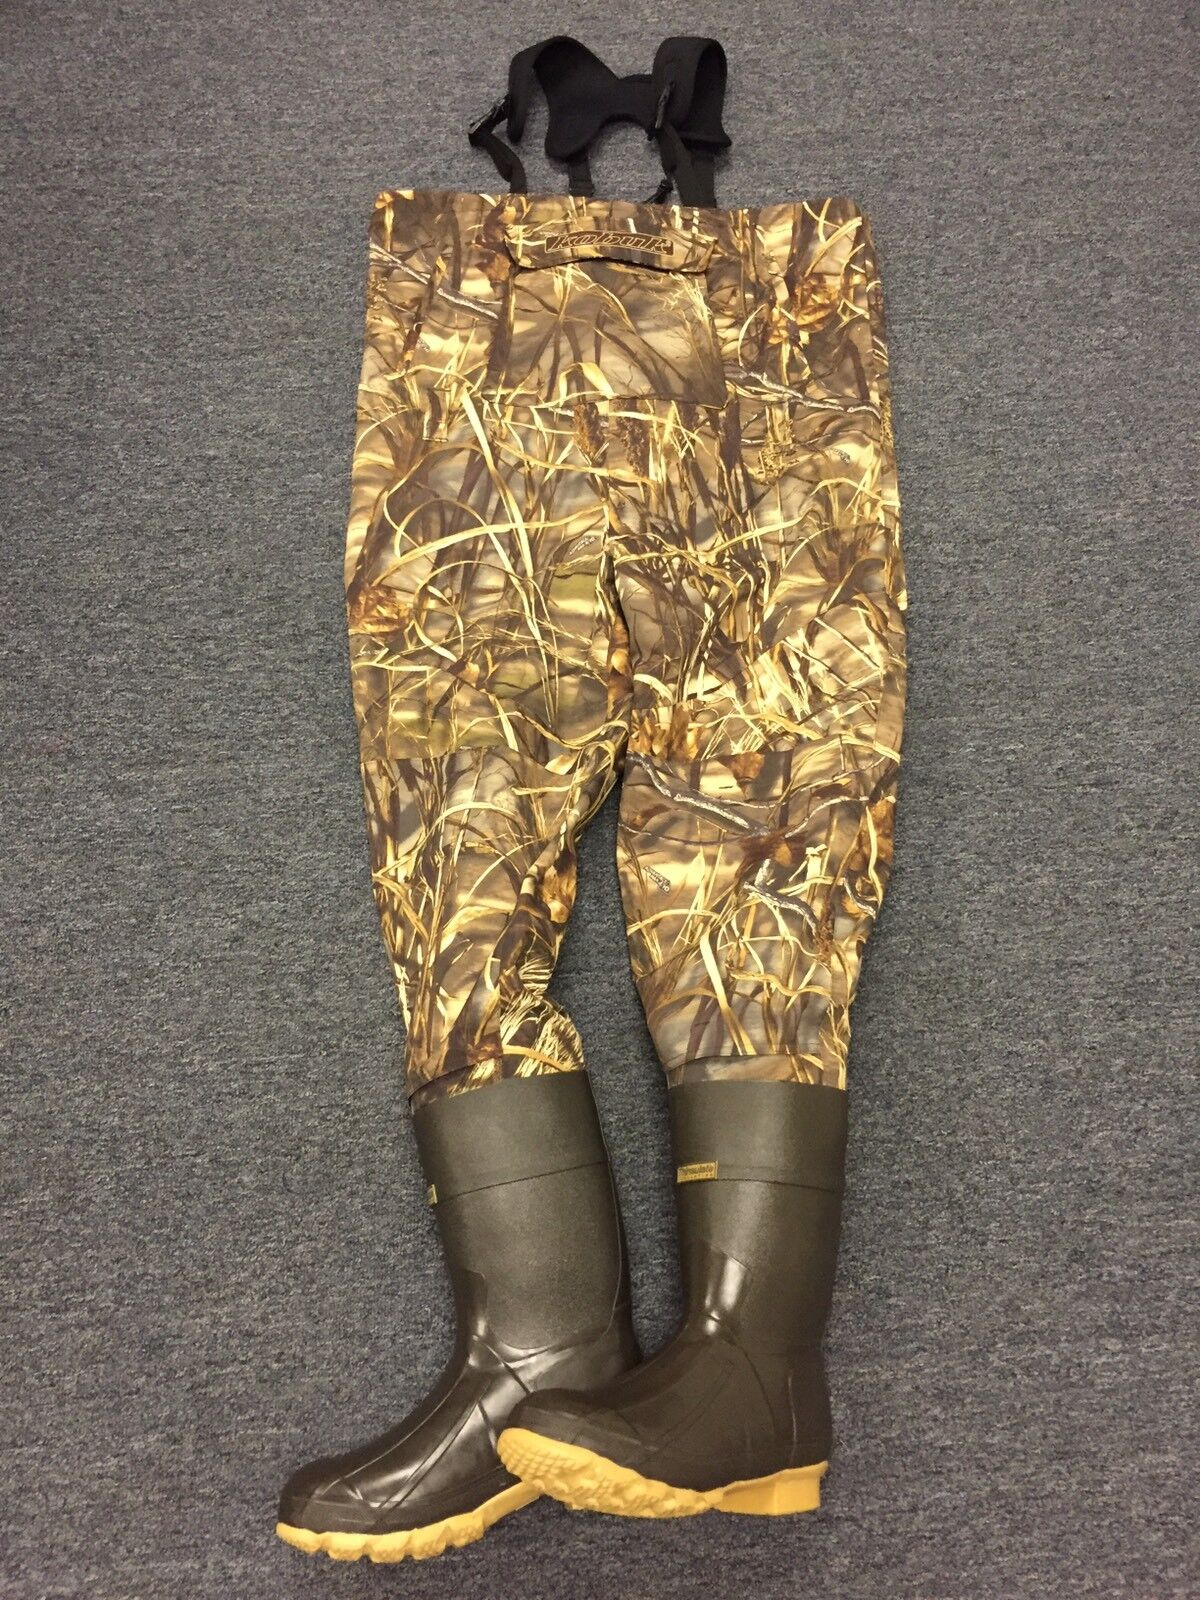 NEW Kobuk Men's Max-4 Camo Premium Breathable Hunting Wader Lug Boots Sz 12 KING